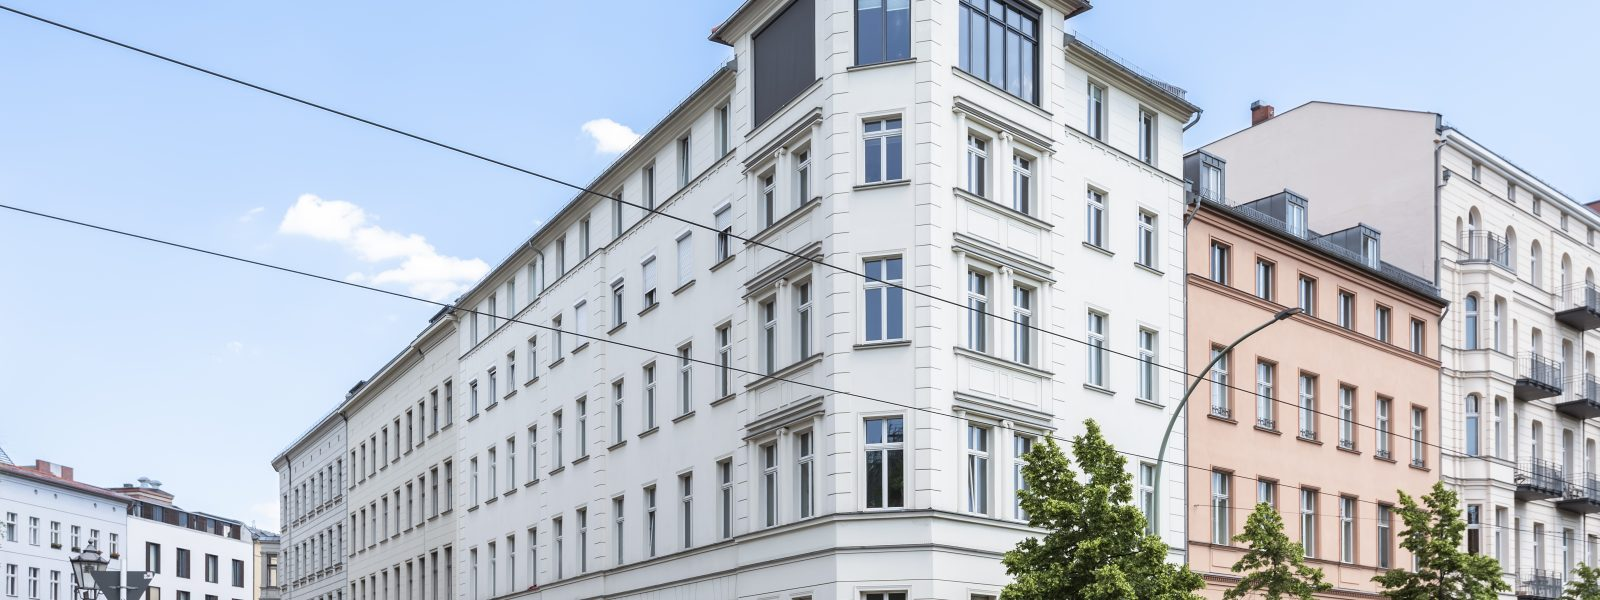 Historic and modern: the pearl of Monbijoupark (Berlin Mitte)